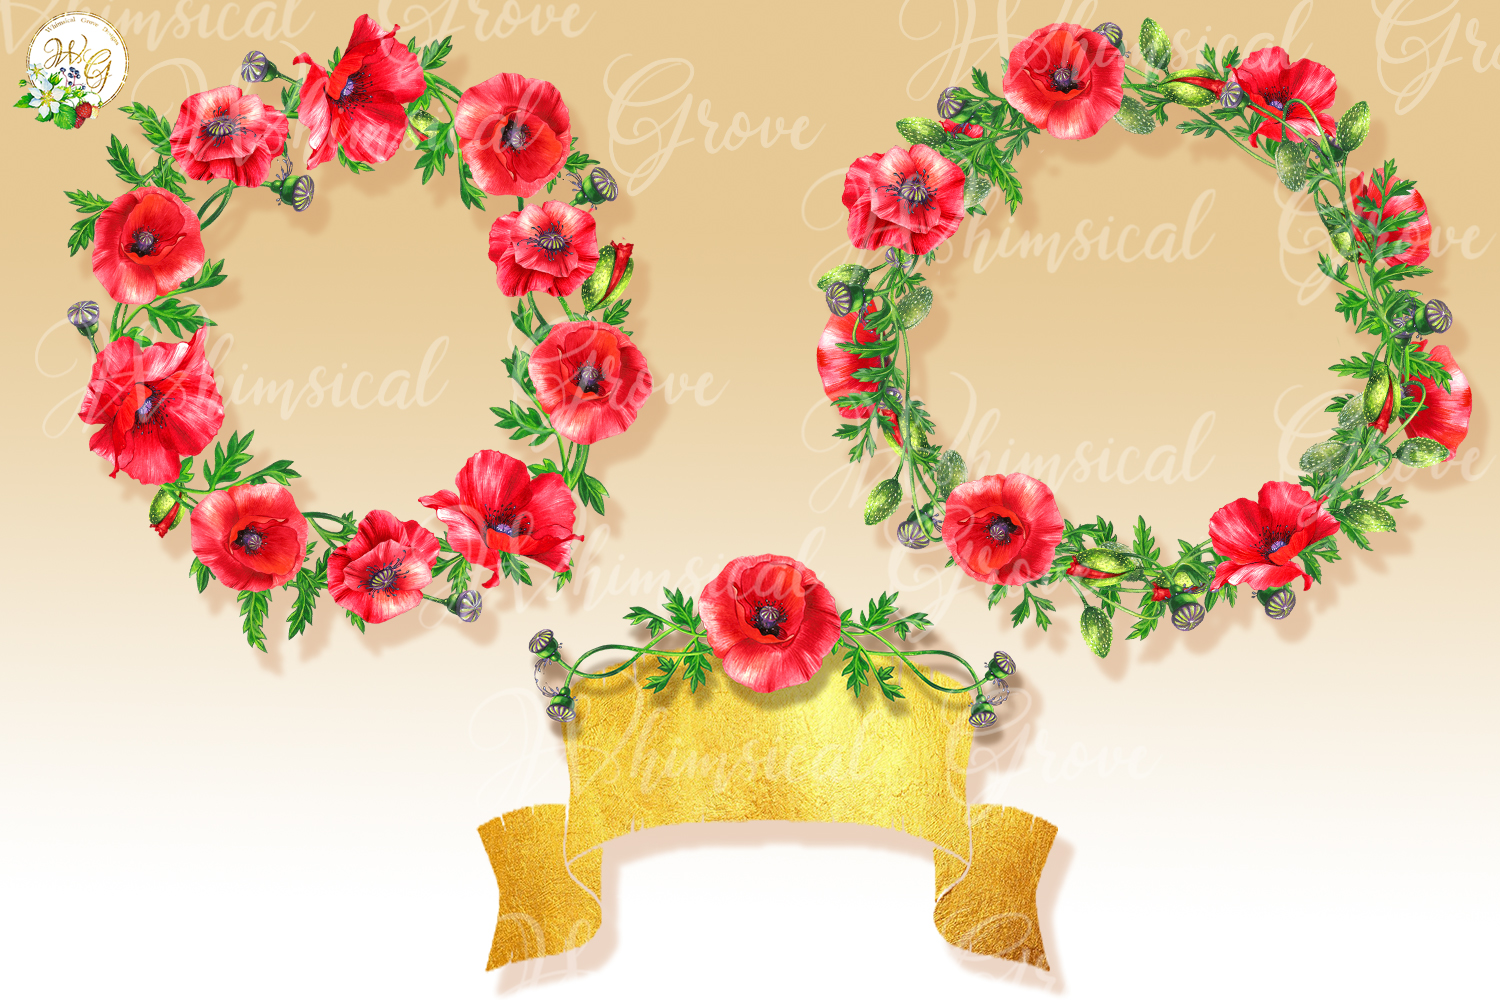 Scarlet Poppy set 18 watercolor handpainted clipart, floral, example image 3